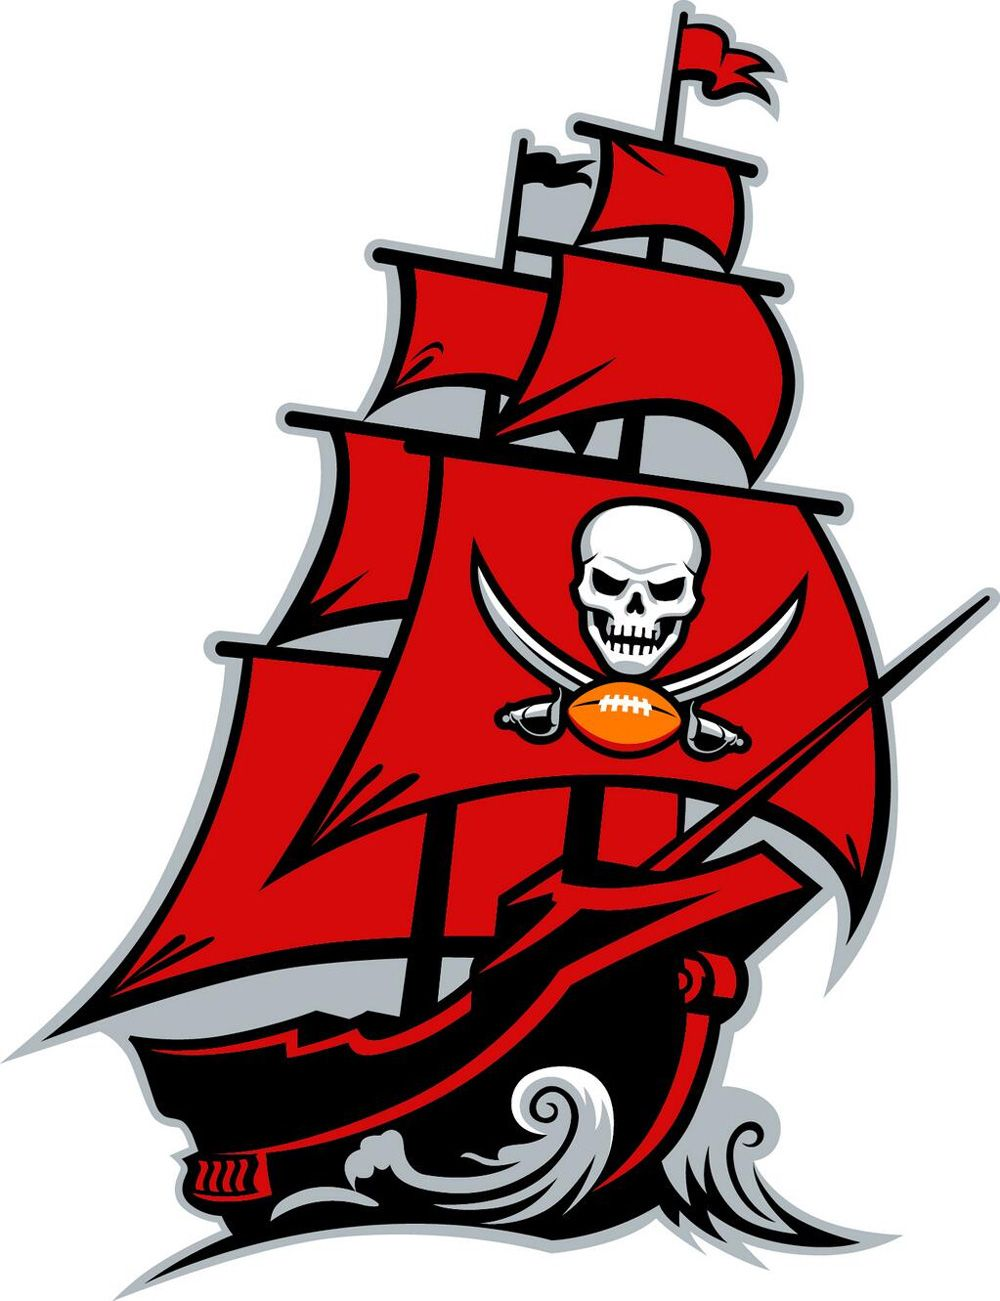 New Logo Identity And Helmet For Tampa Bay Buccaneers